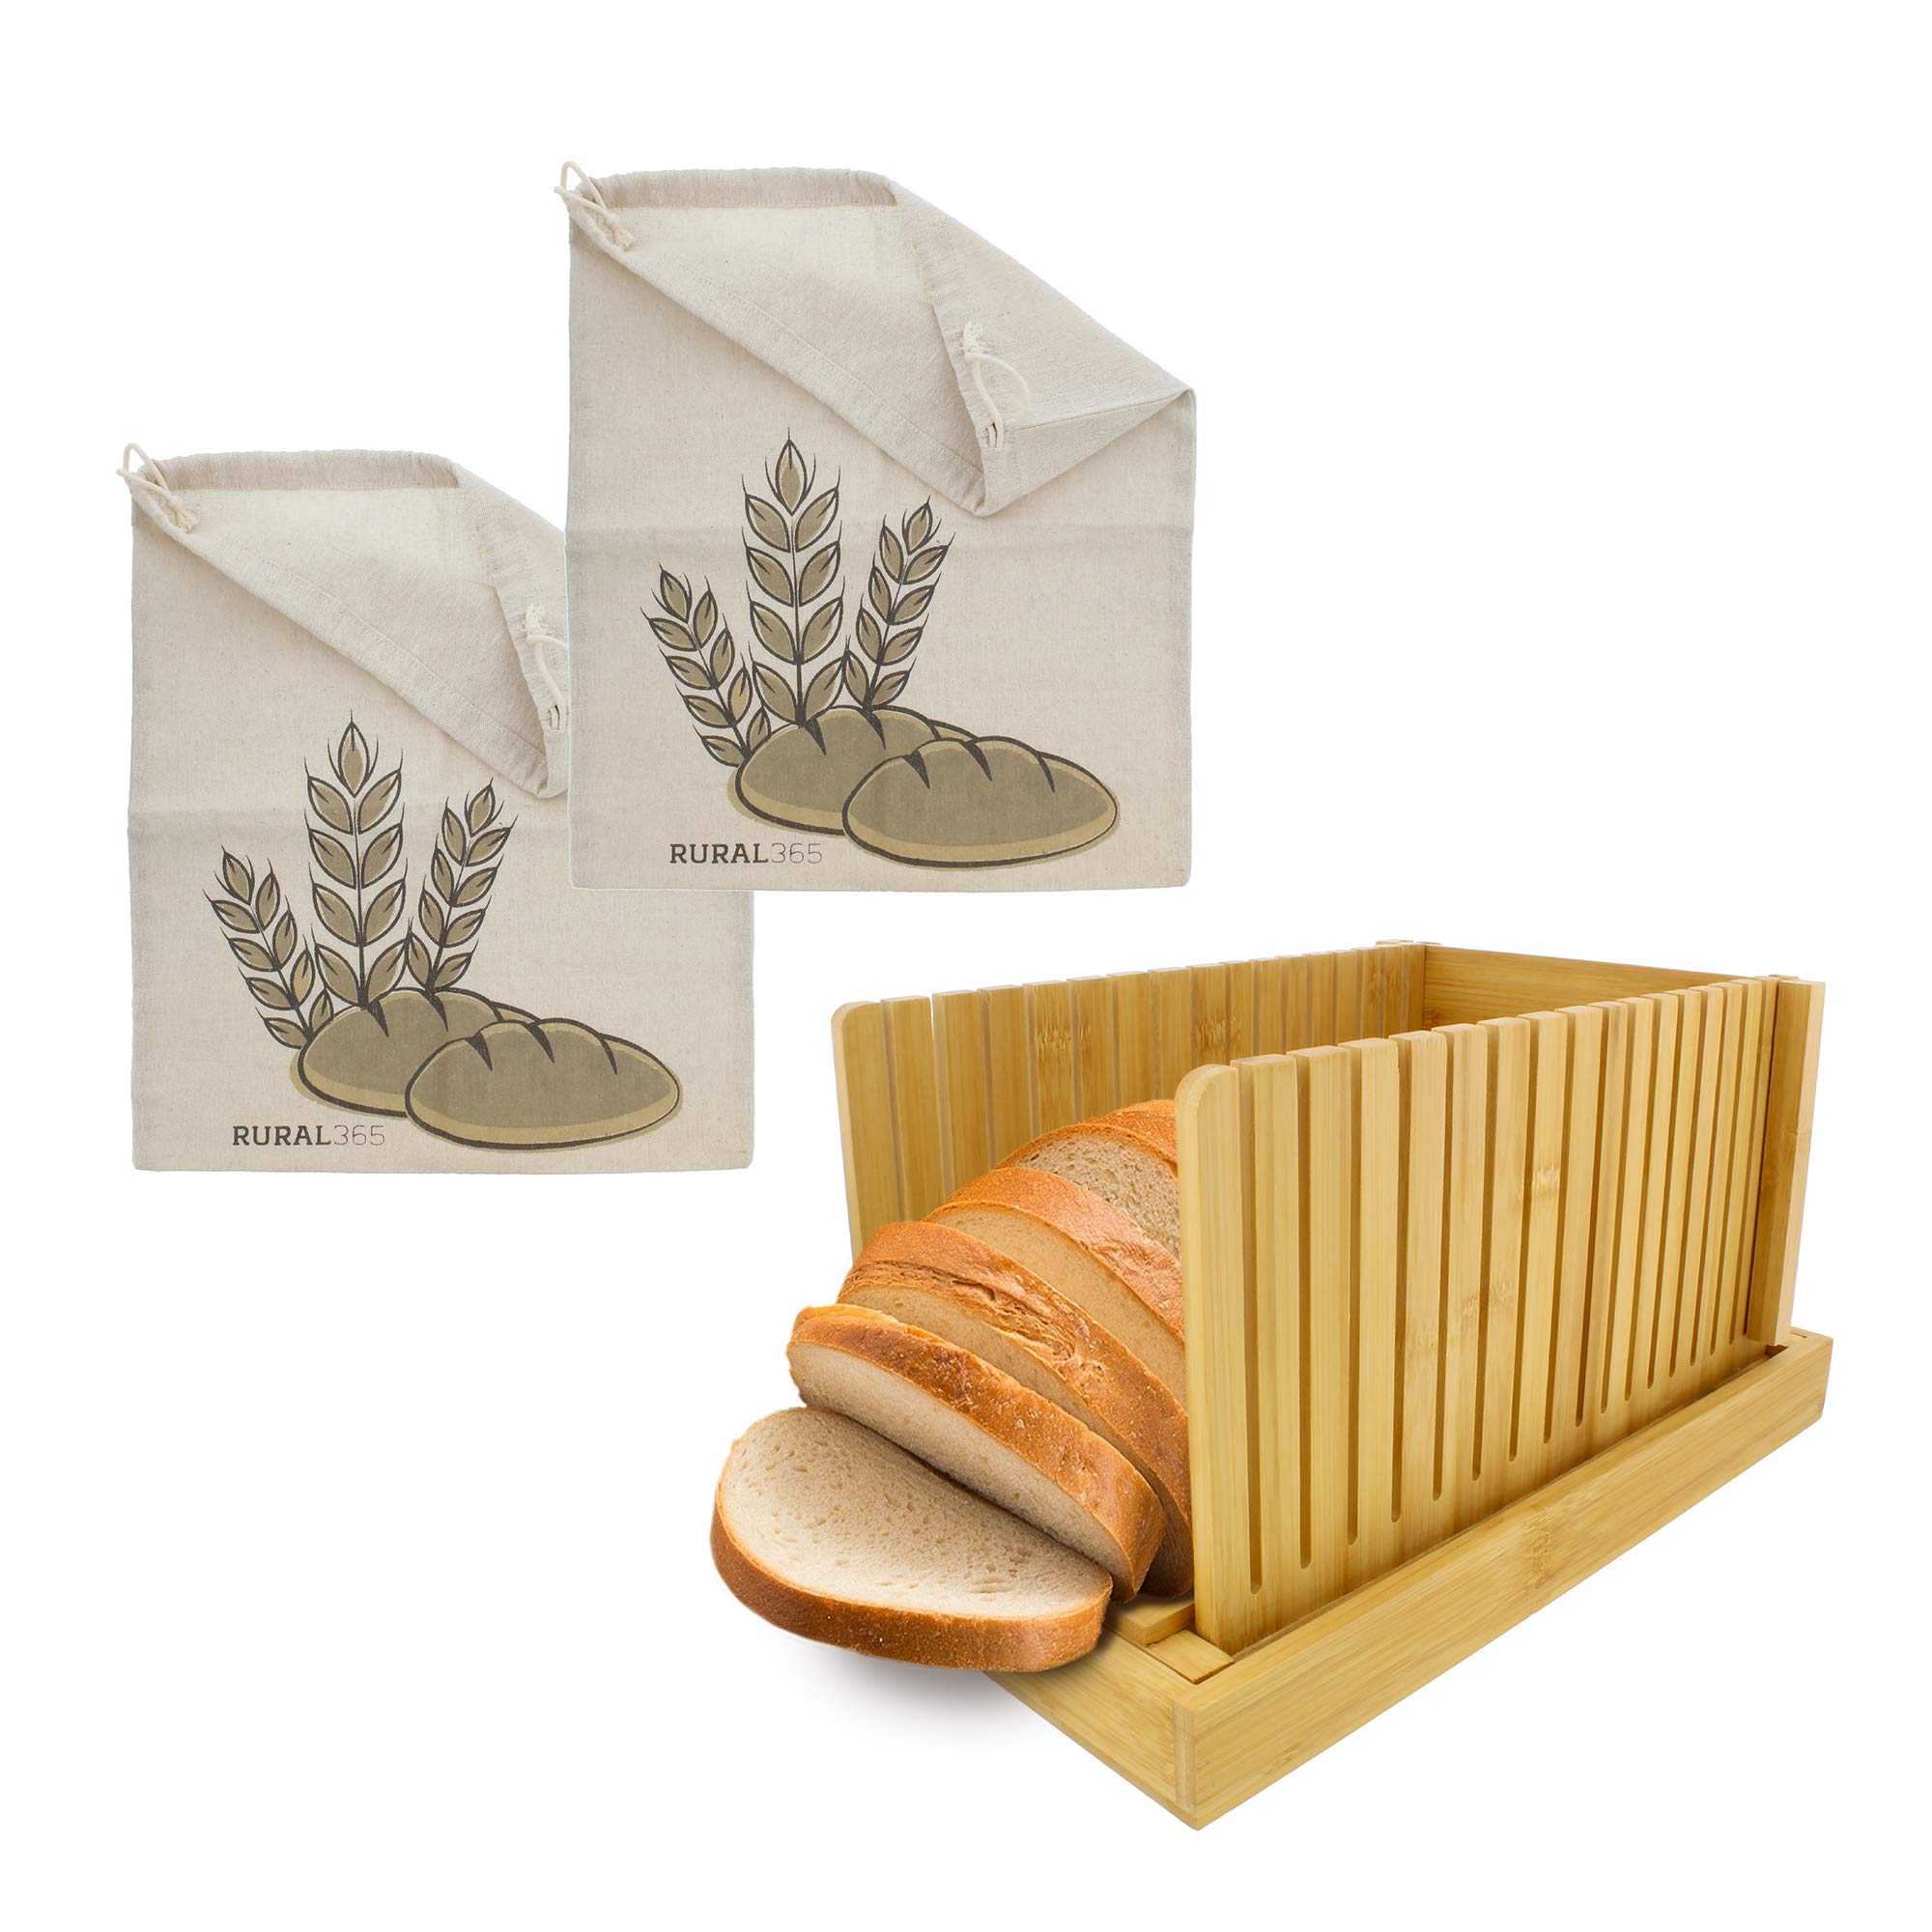 Rural365 Bamboo Bread Slicer Guide and 2 Pack Natural Linen Bread Bags for Homemade Bread - Bread Baking Supplies